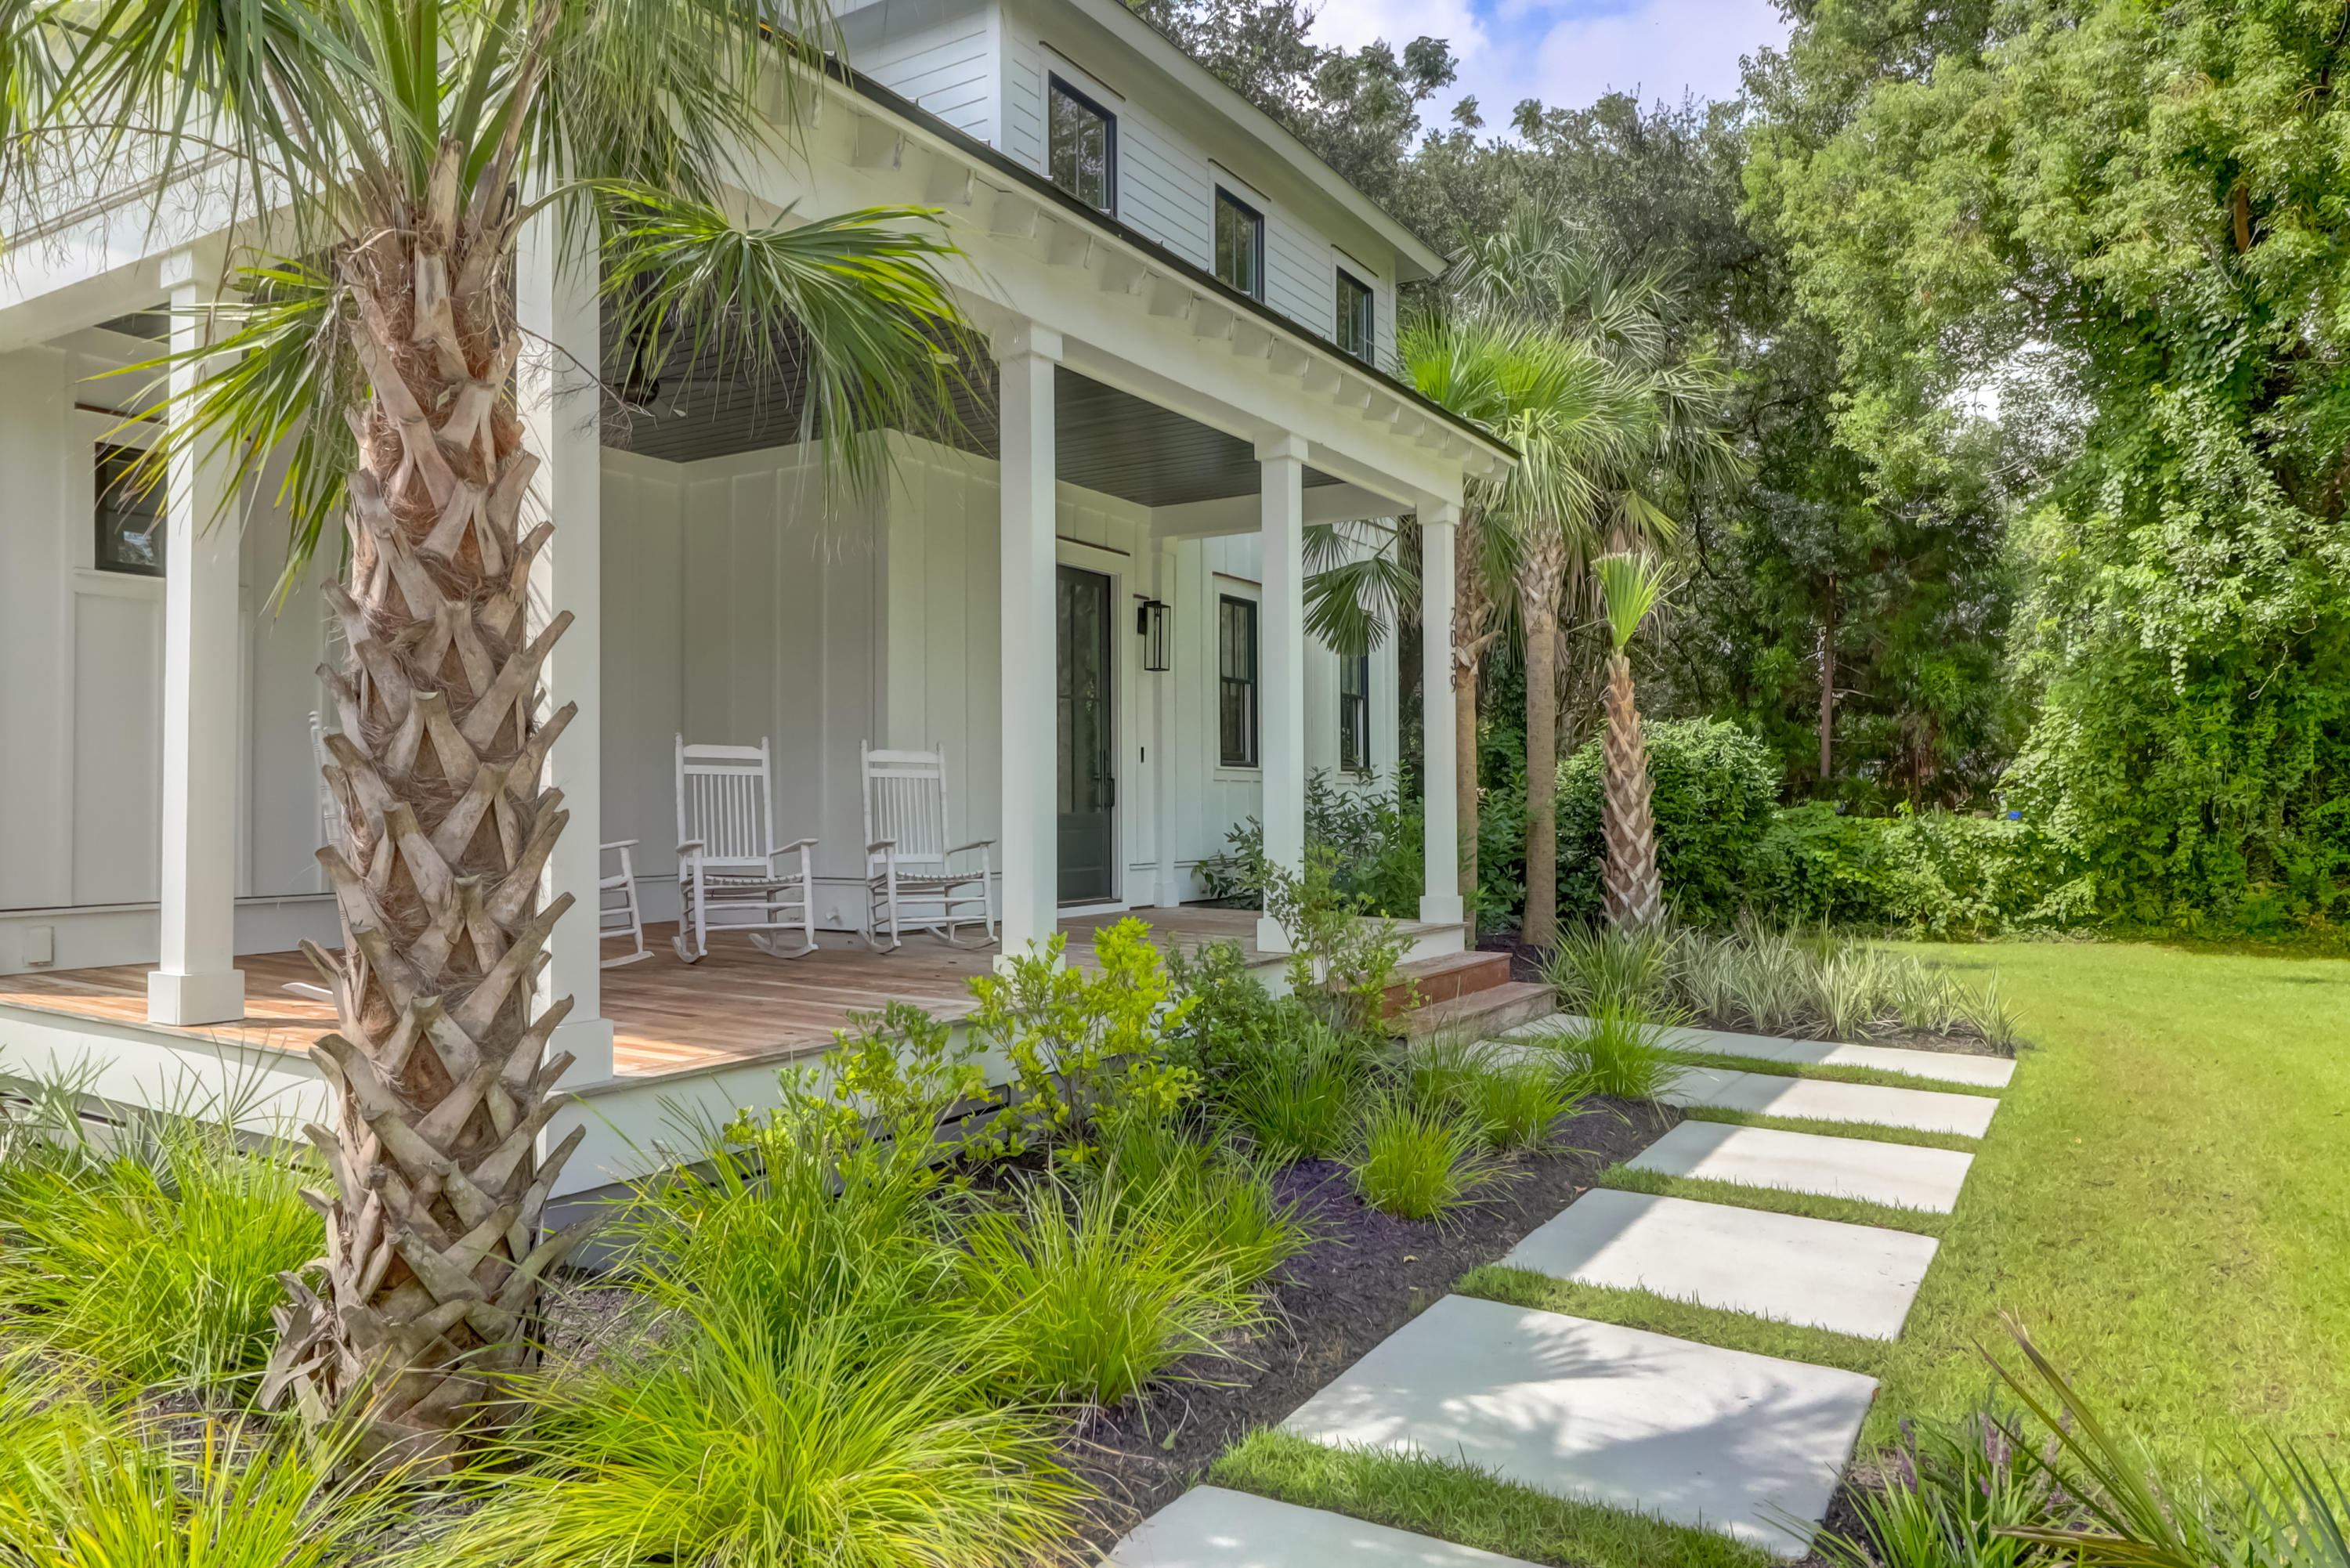 Riverland Terrace Homes For Sale - 2039 Parkway Dr, Charleston, SC - 33